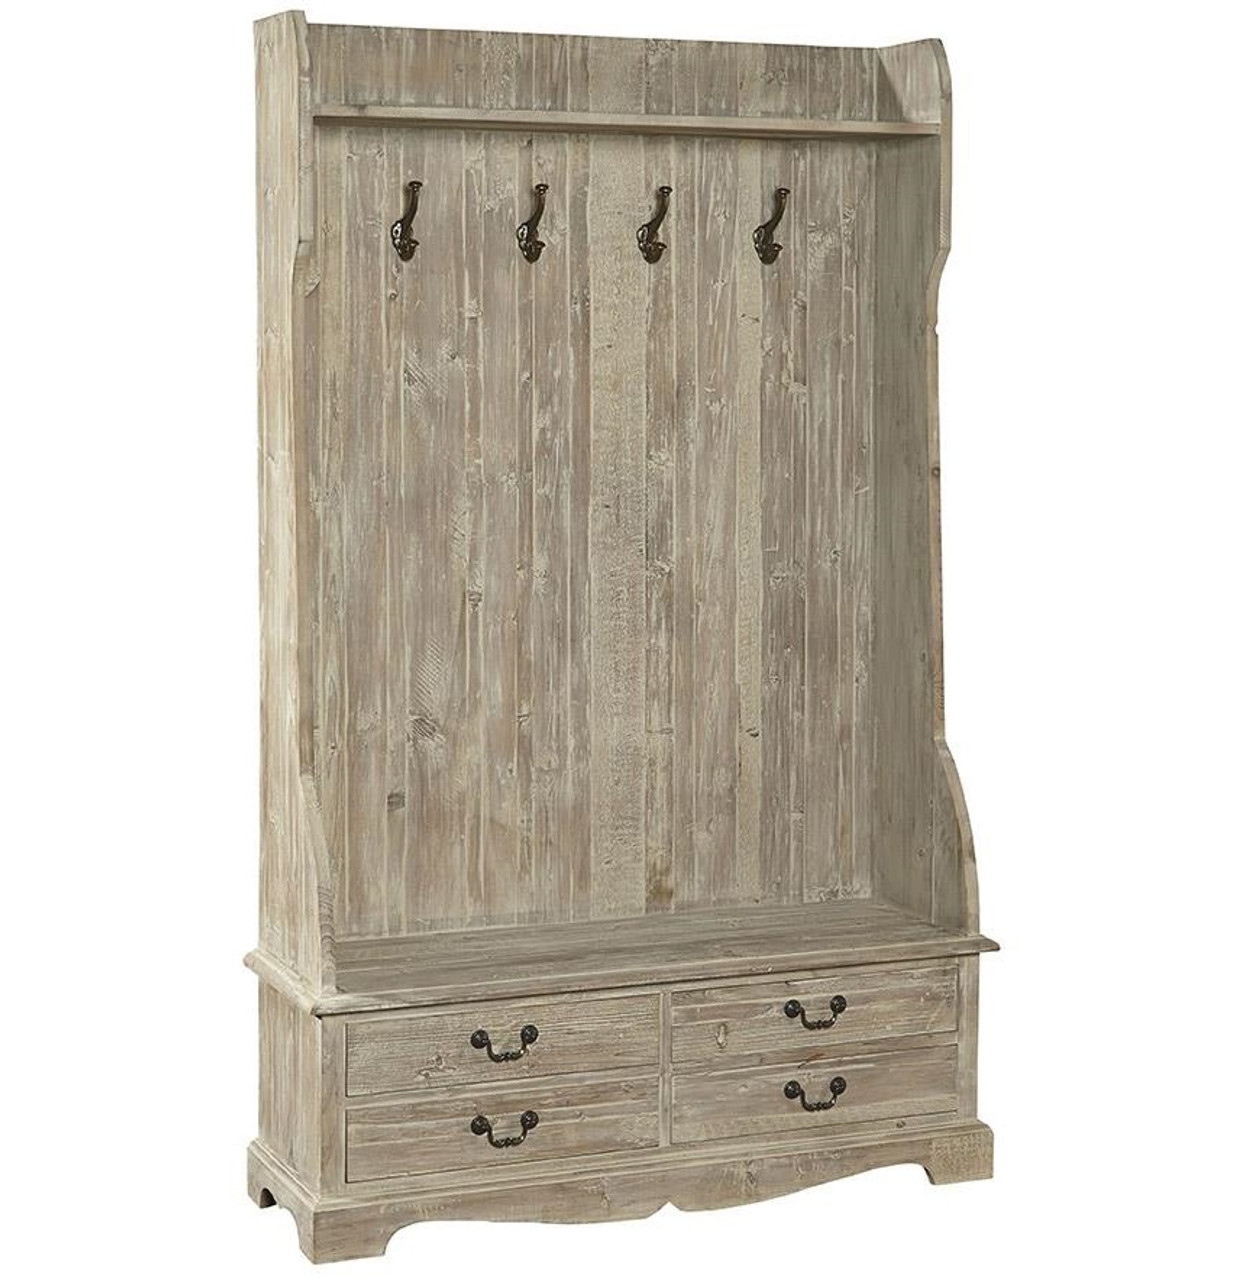 French Country Rustic Entry Storage Bench with Coat Rack  sc 1 st  Zin Home & French Country Rustic Entry Storage Bench with Coat Rack | Zin Home